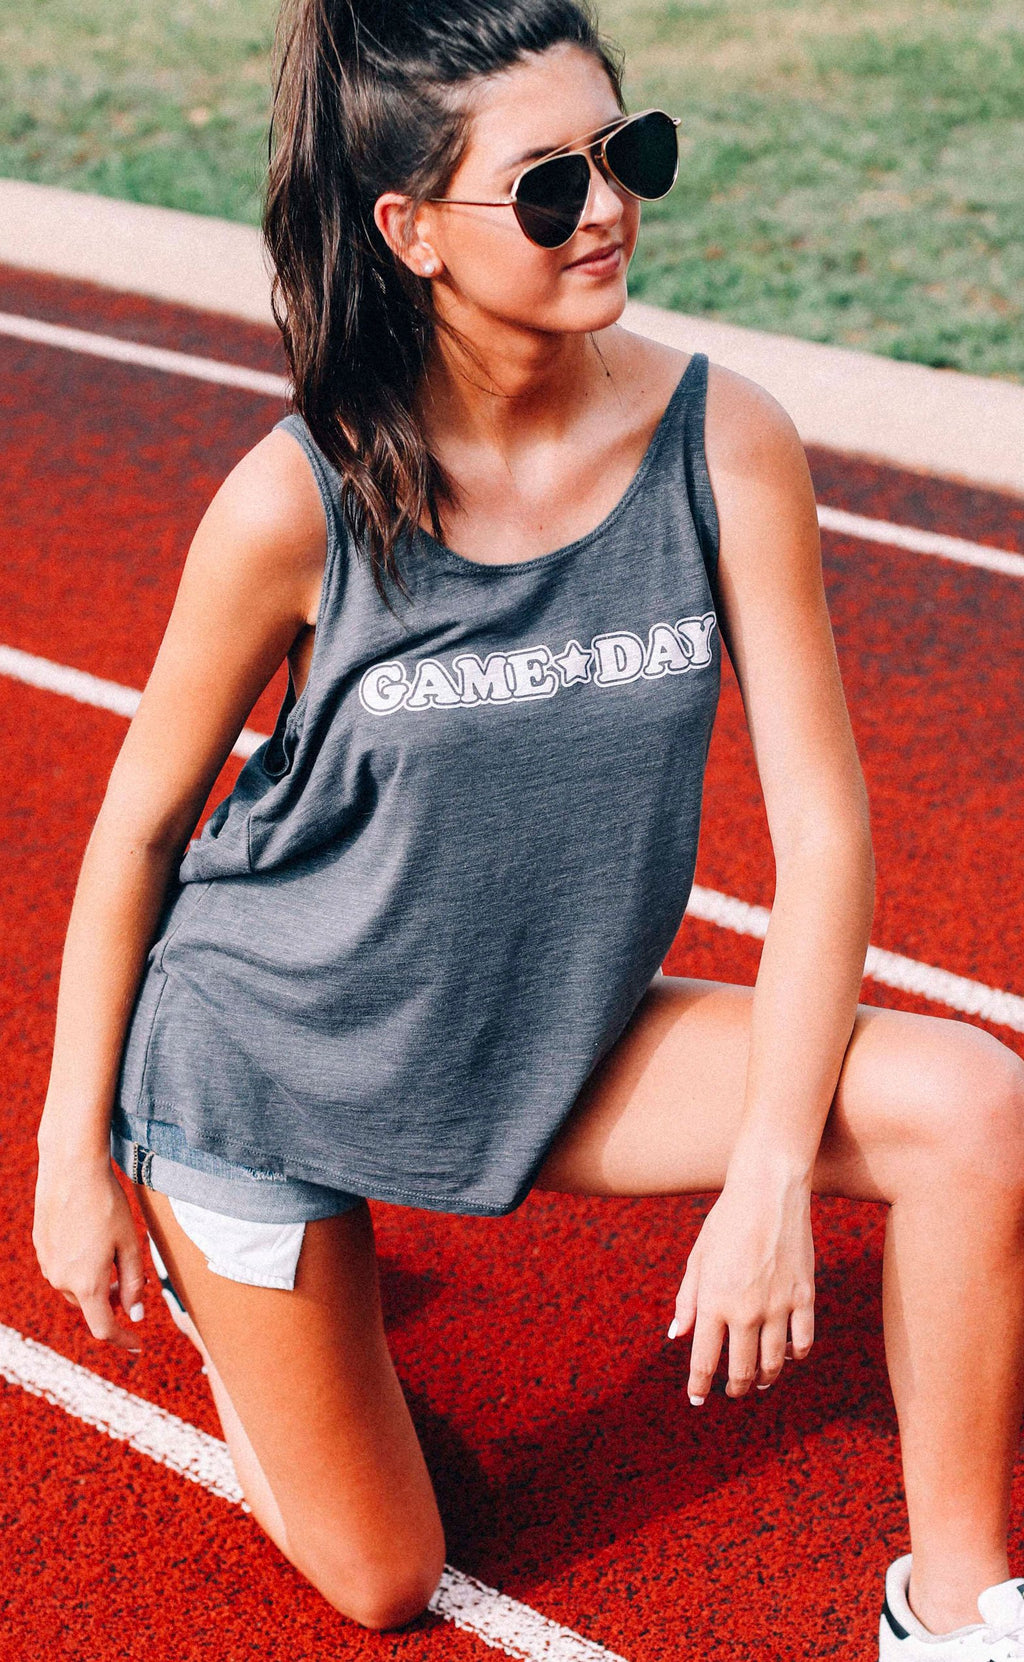 Charlie Southern: Game Day Tank